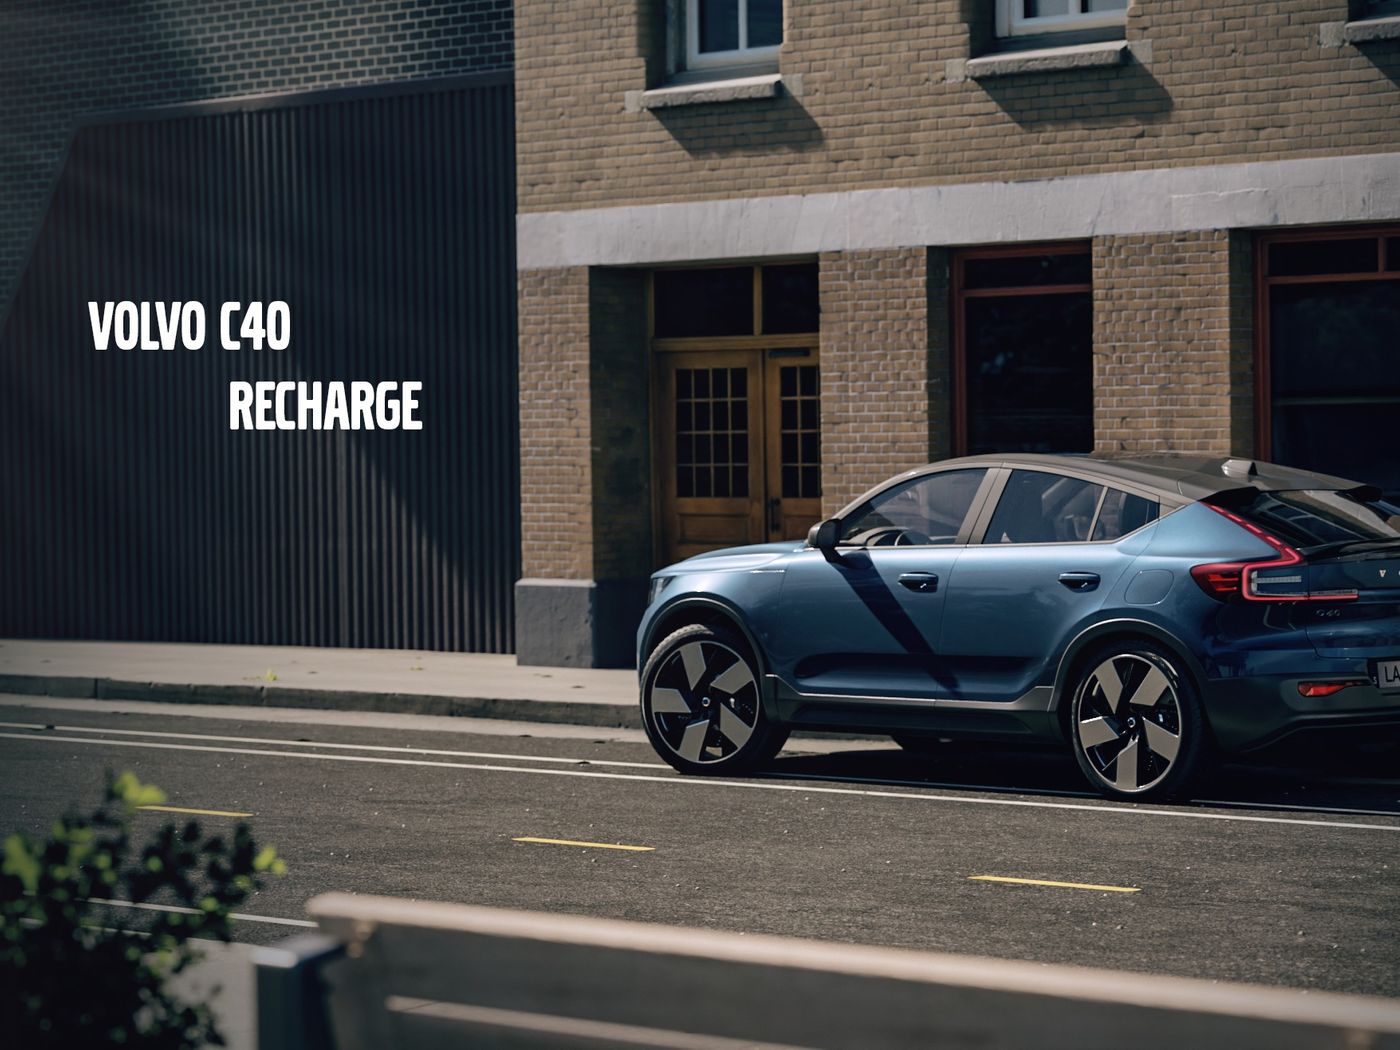 The Volvo C40 Project